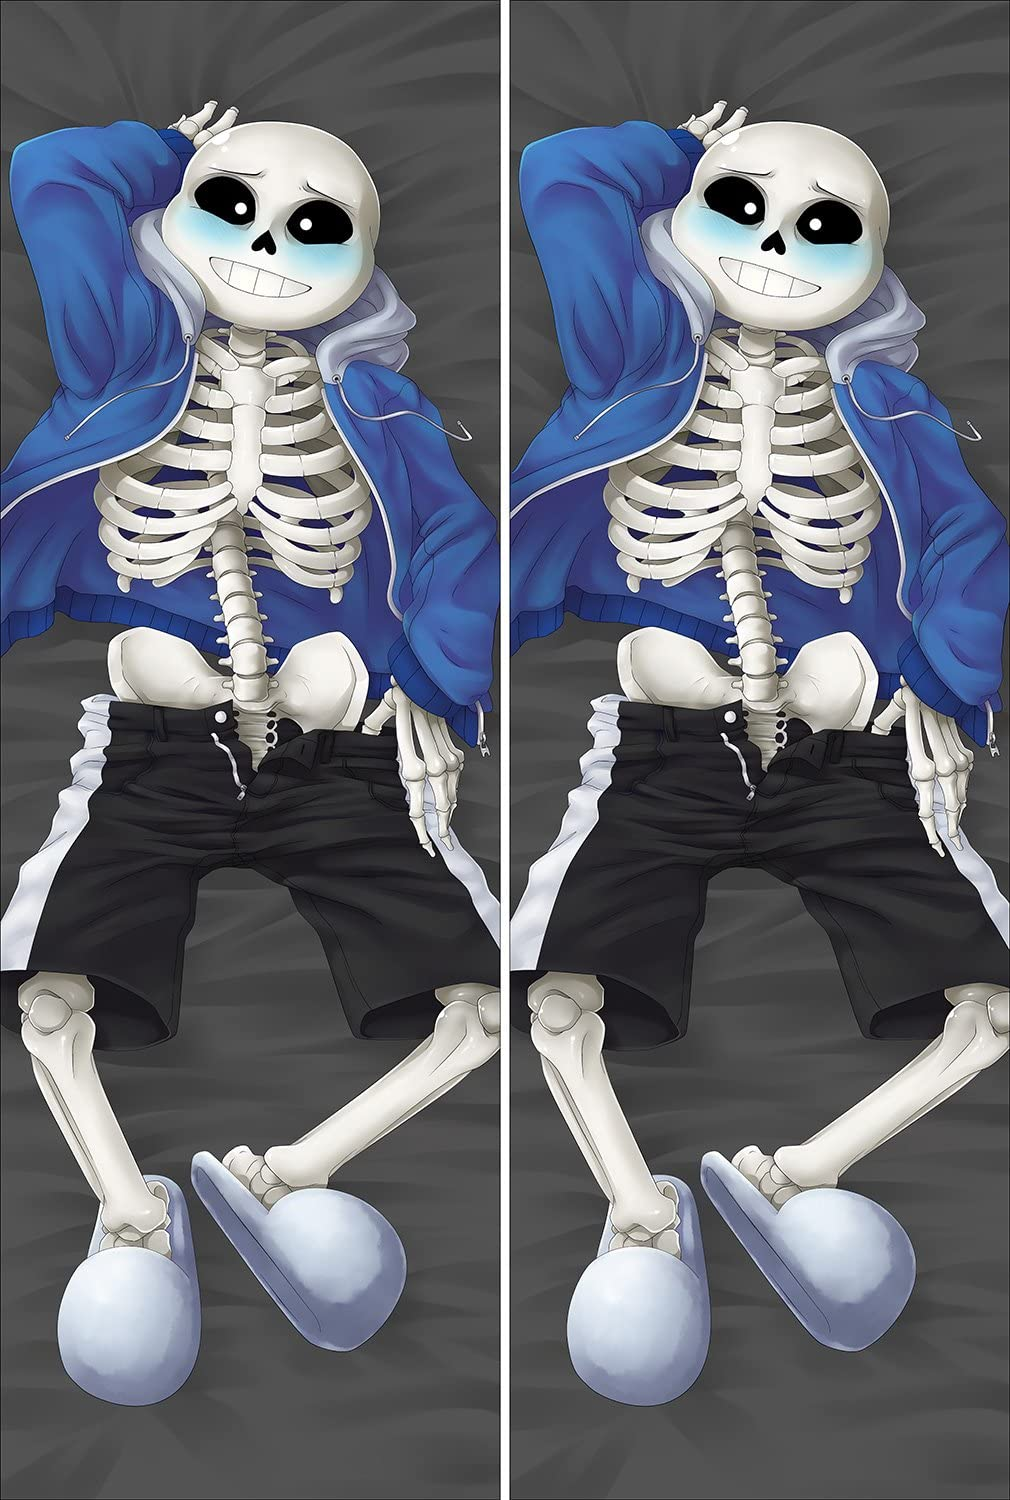 Anime Undertale Hugs Pillow Case Manga Max 61% OFF Body Cosplay Max 57% OFF Hugging Long